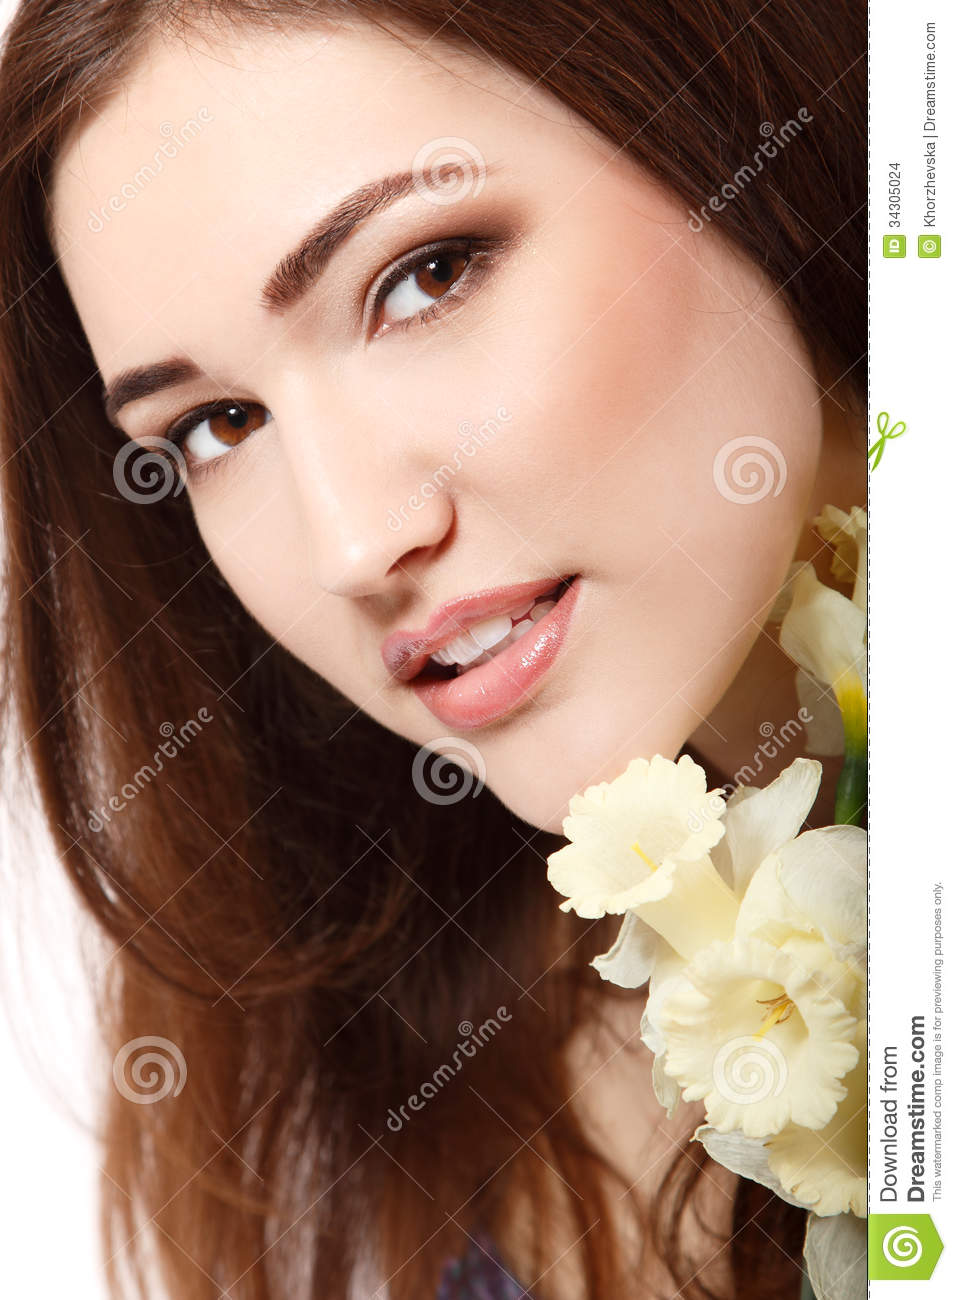 Beautiful Teen Girl Smiling And With Flower Narcissus And